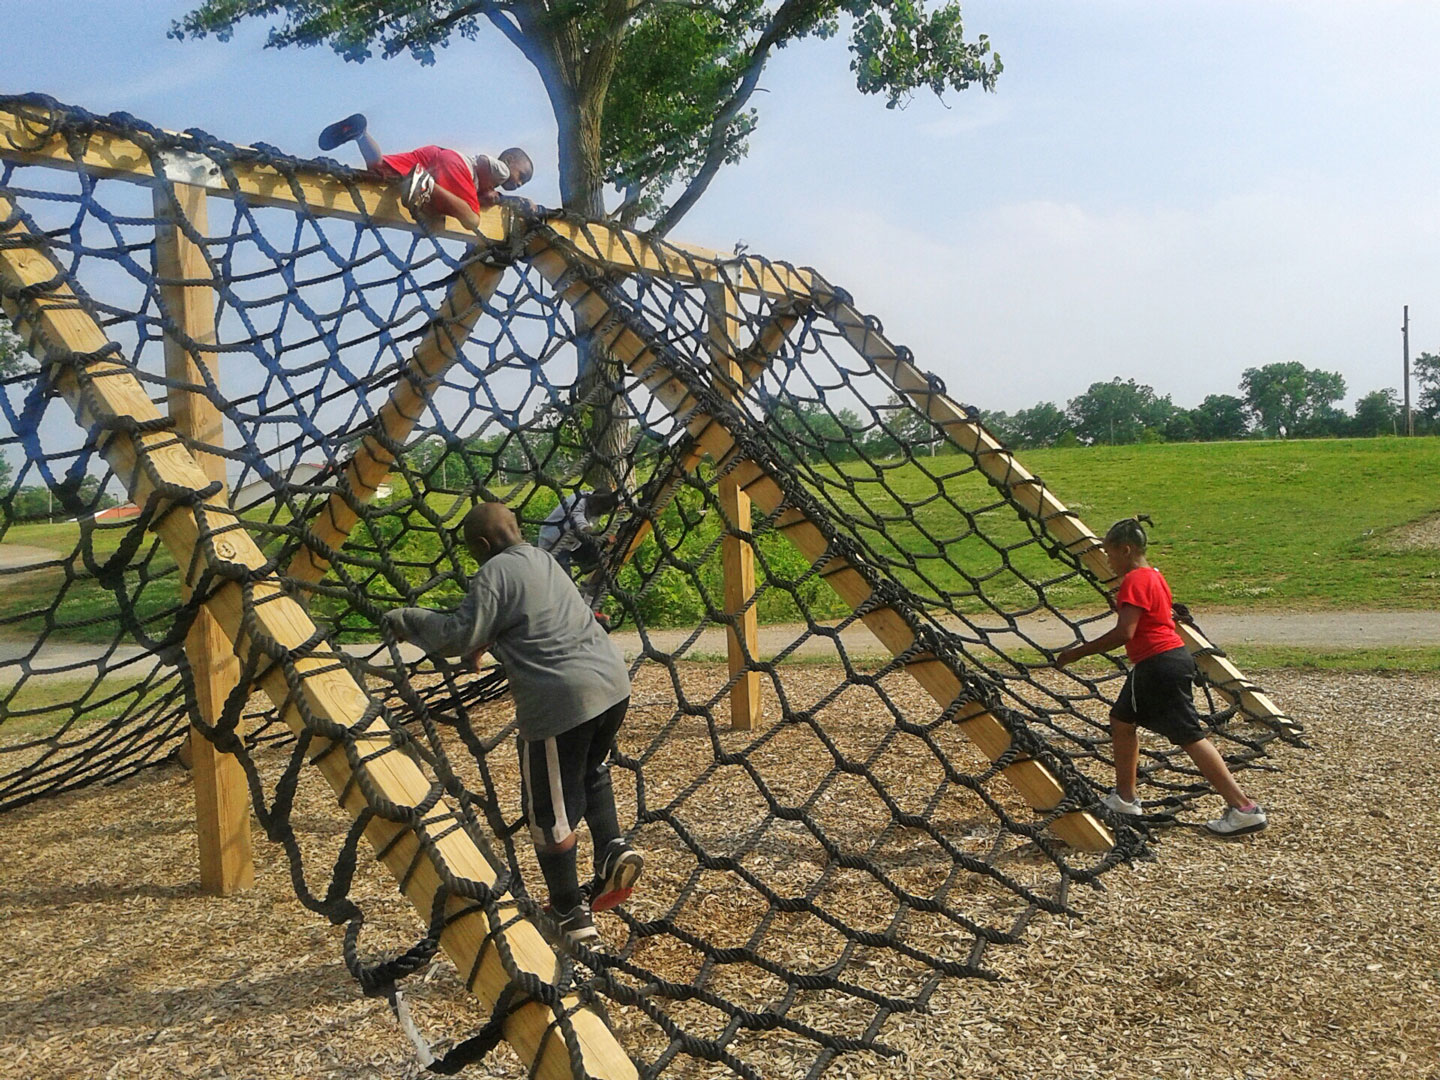 Cargo crawl at obstacle course in Scioto Audubon